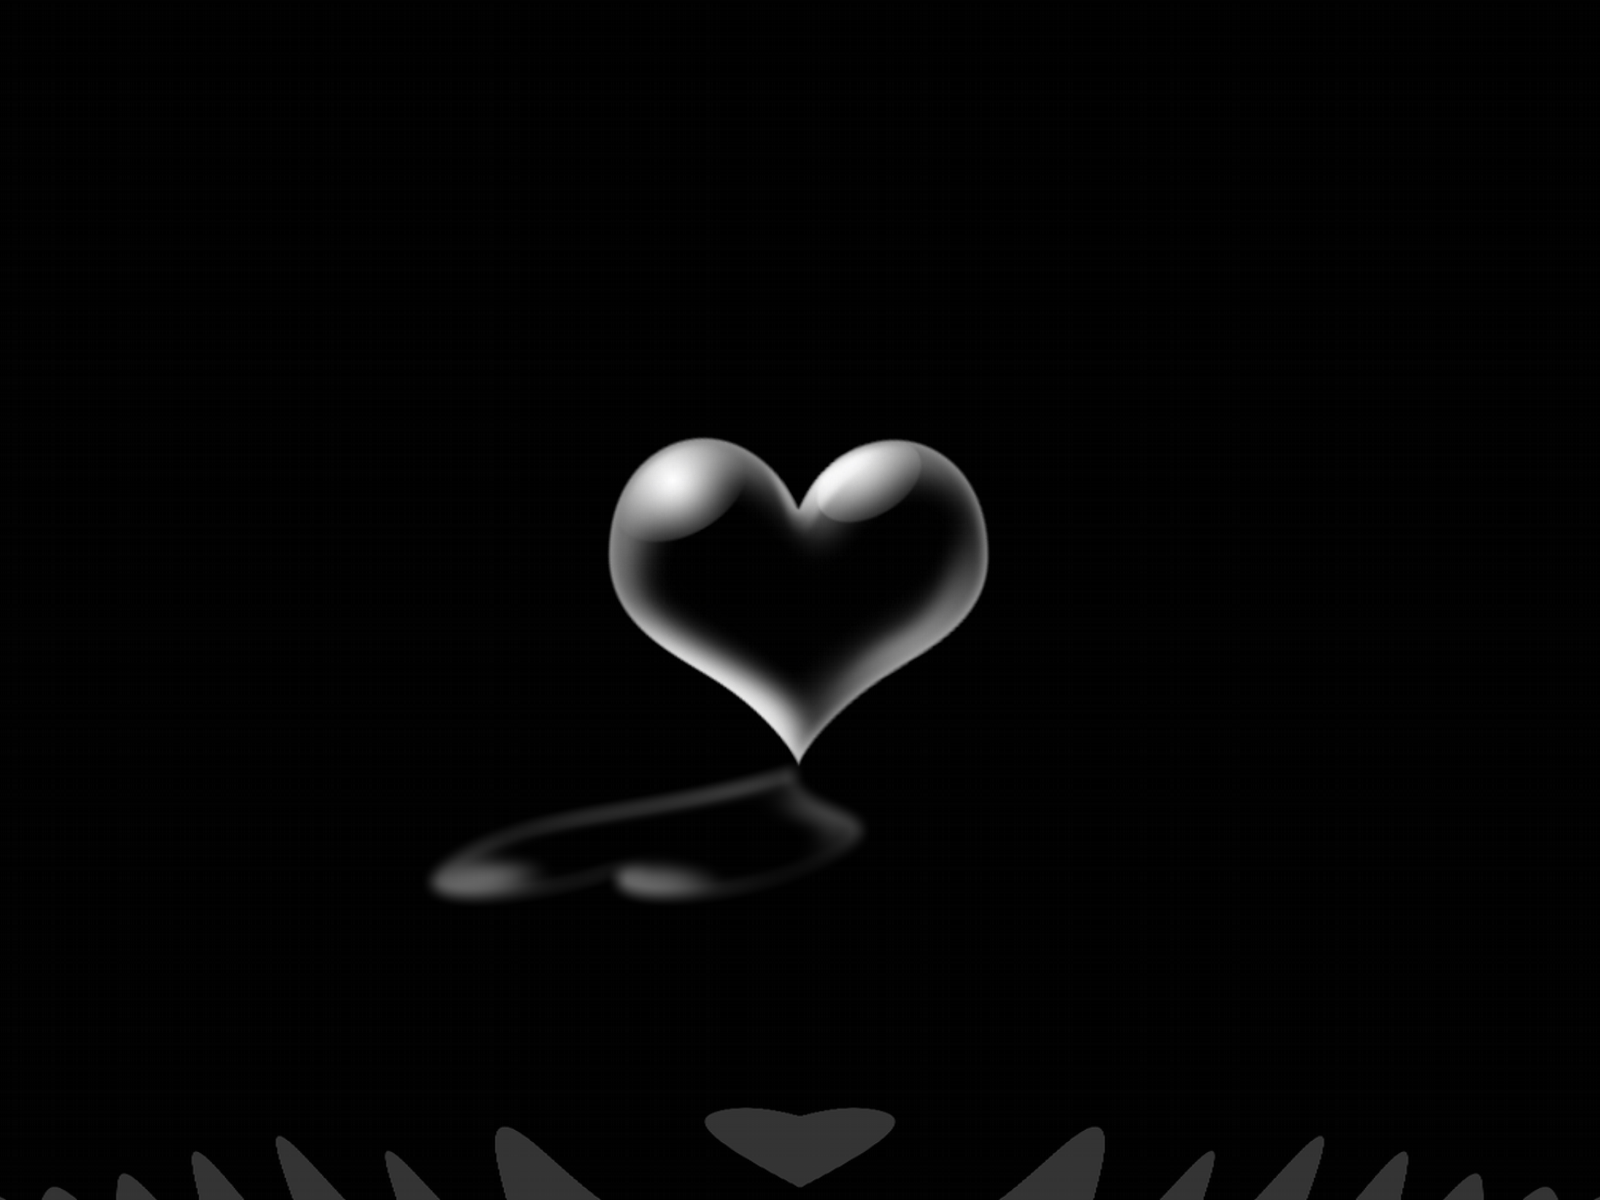 Love Wallpaper With Black Background : Black images Black Heart HD wallpaper and background photos (27294581)